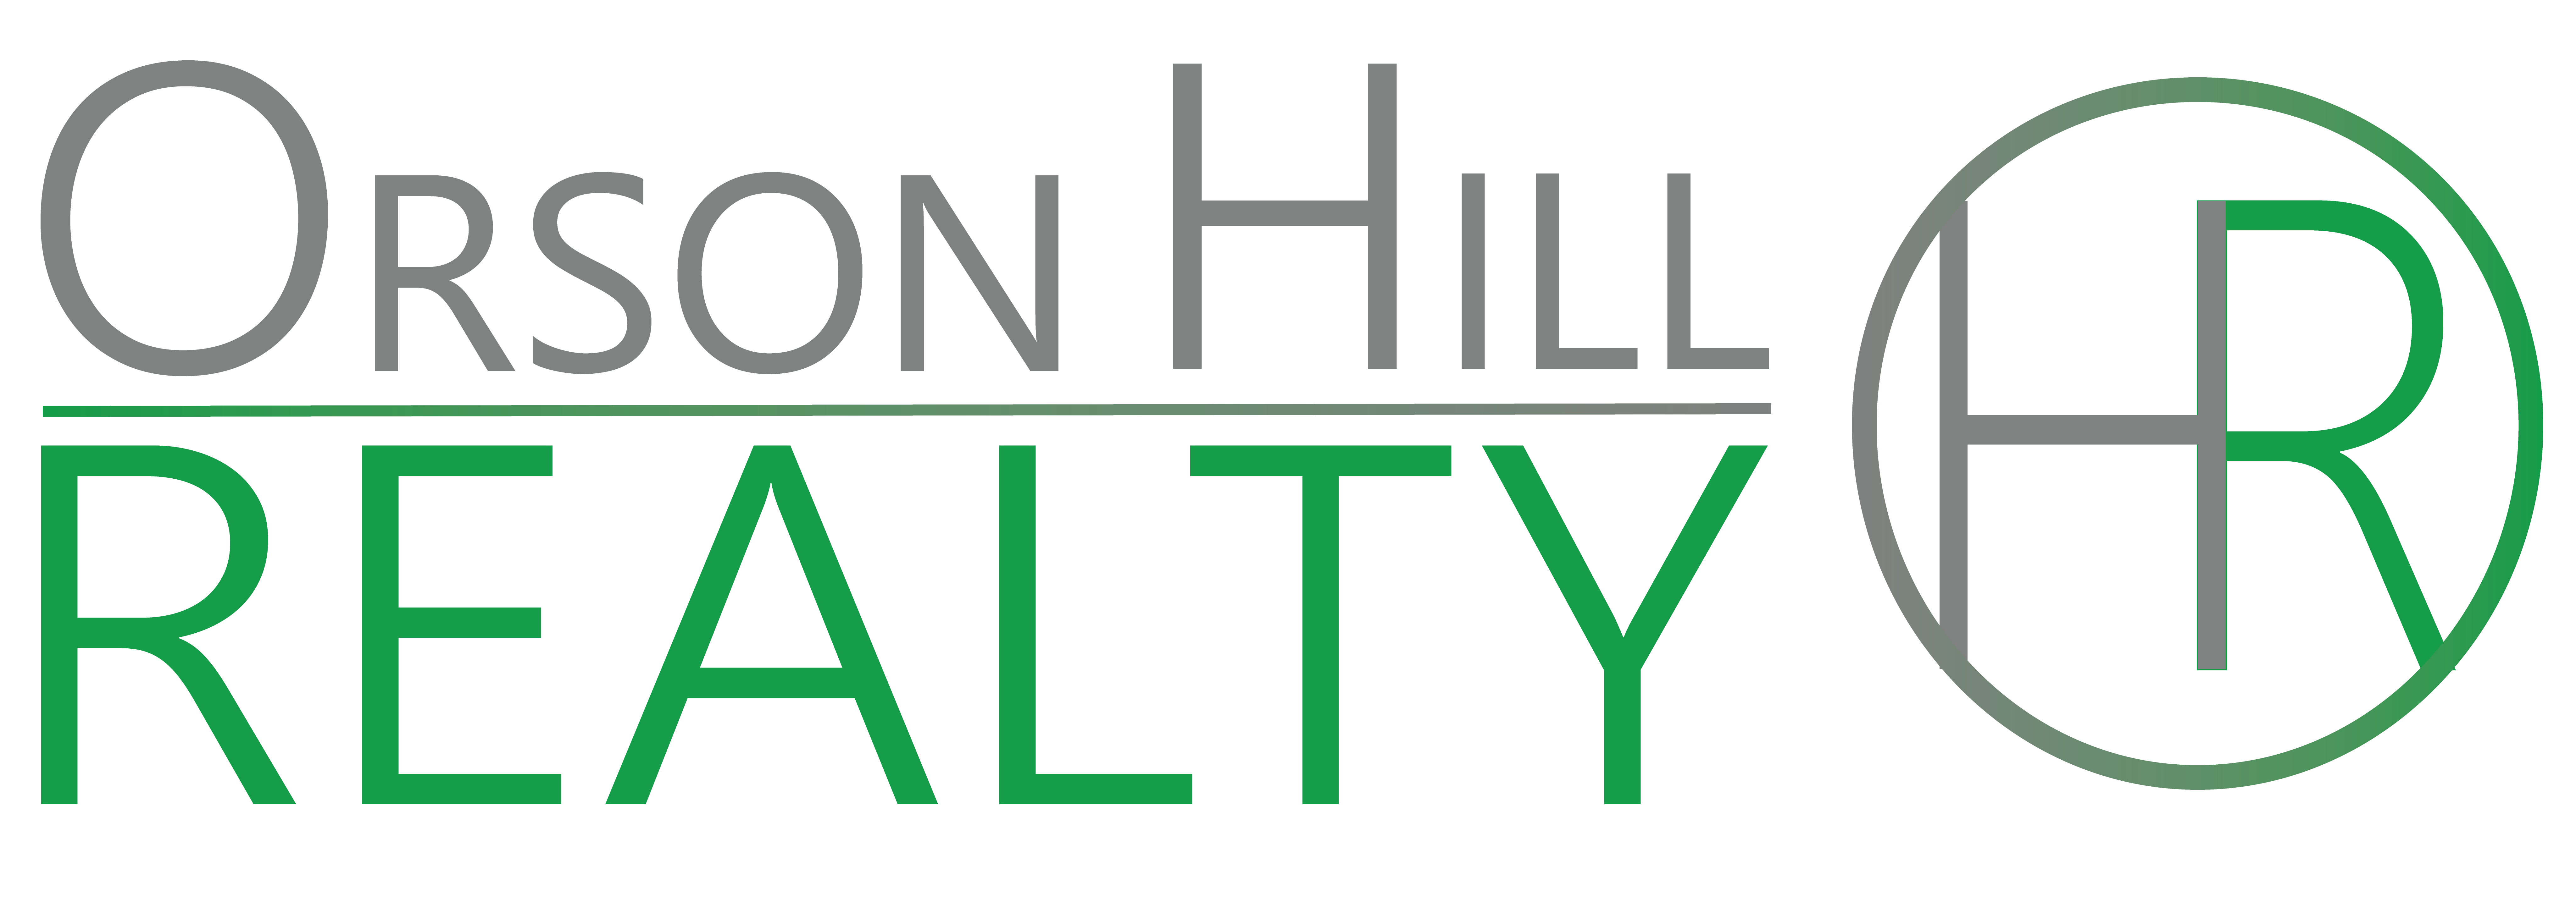 Orson Hill Realty Luxury Agents